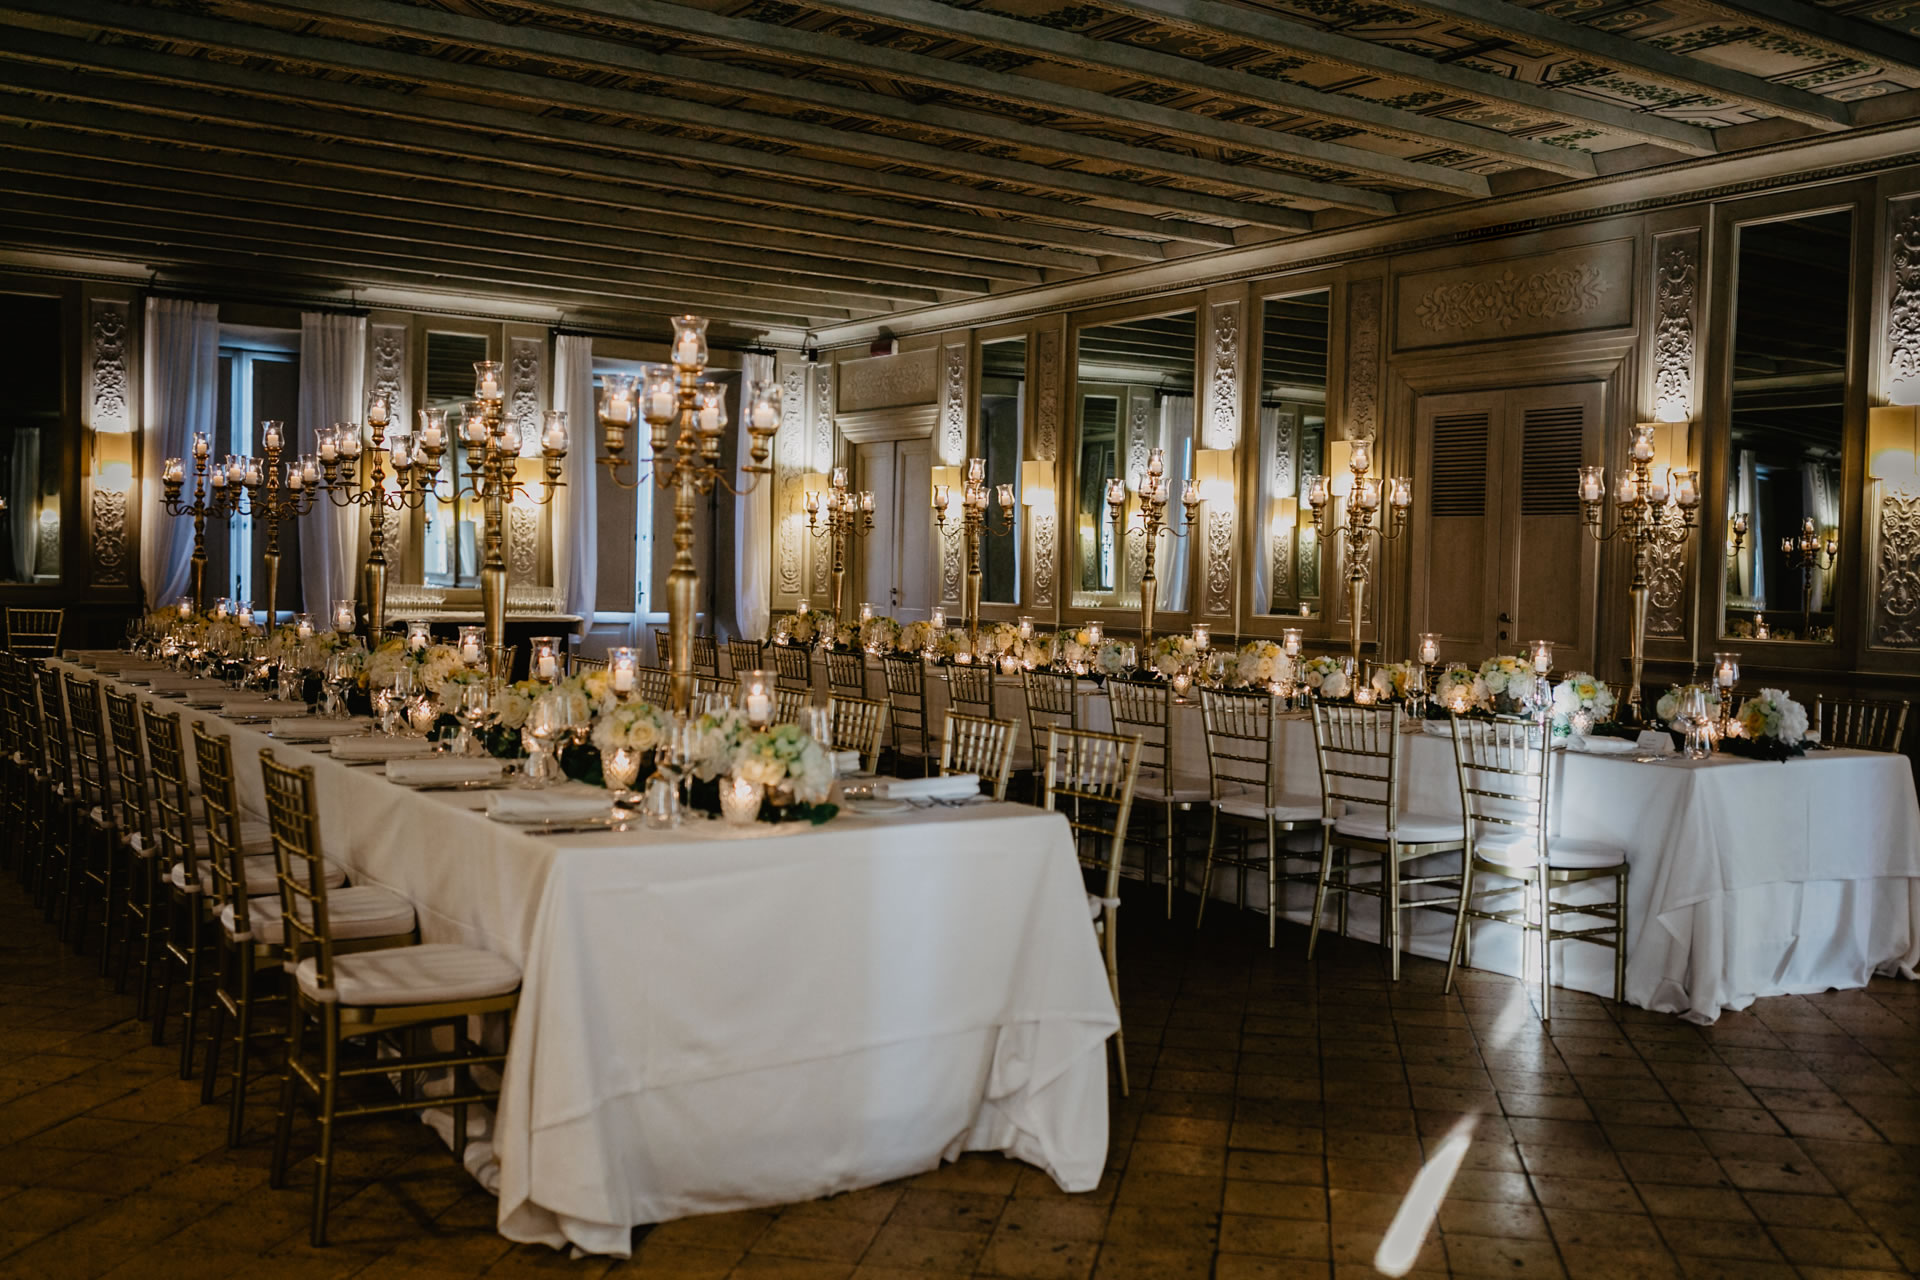 - 33 :: A breath-taking wedding in Rome, the eternal city :: Luxury wedding photography - 32 ::  - 33